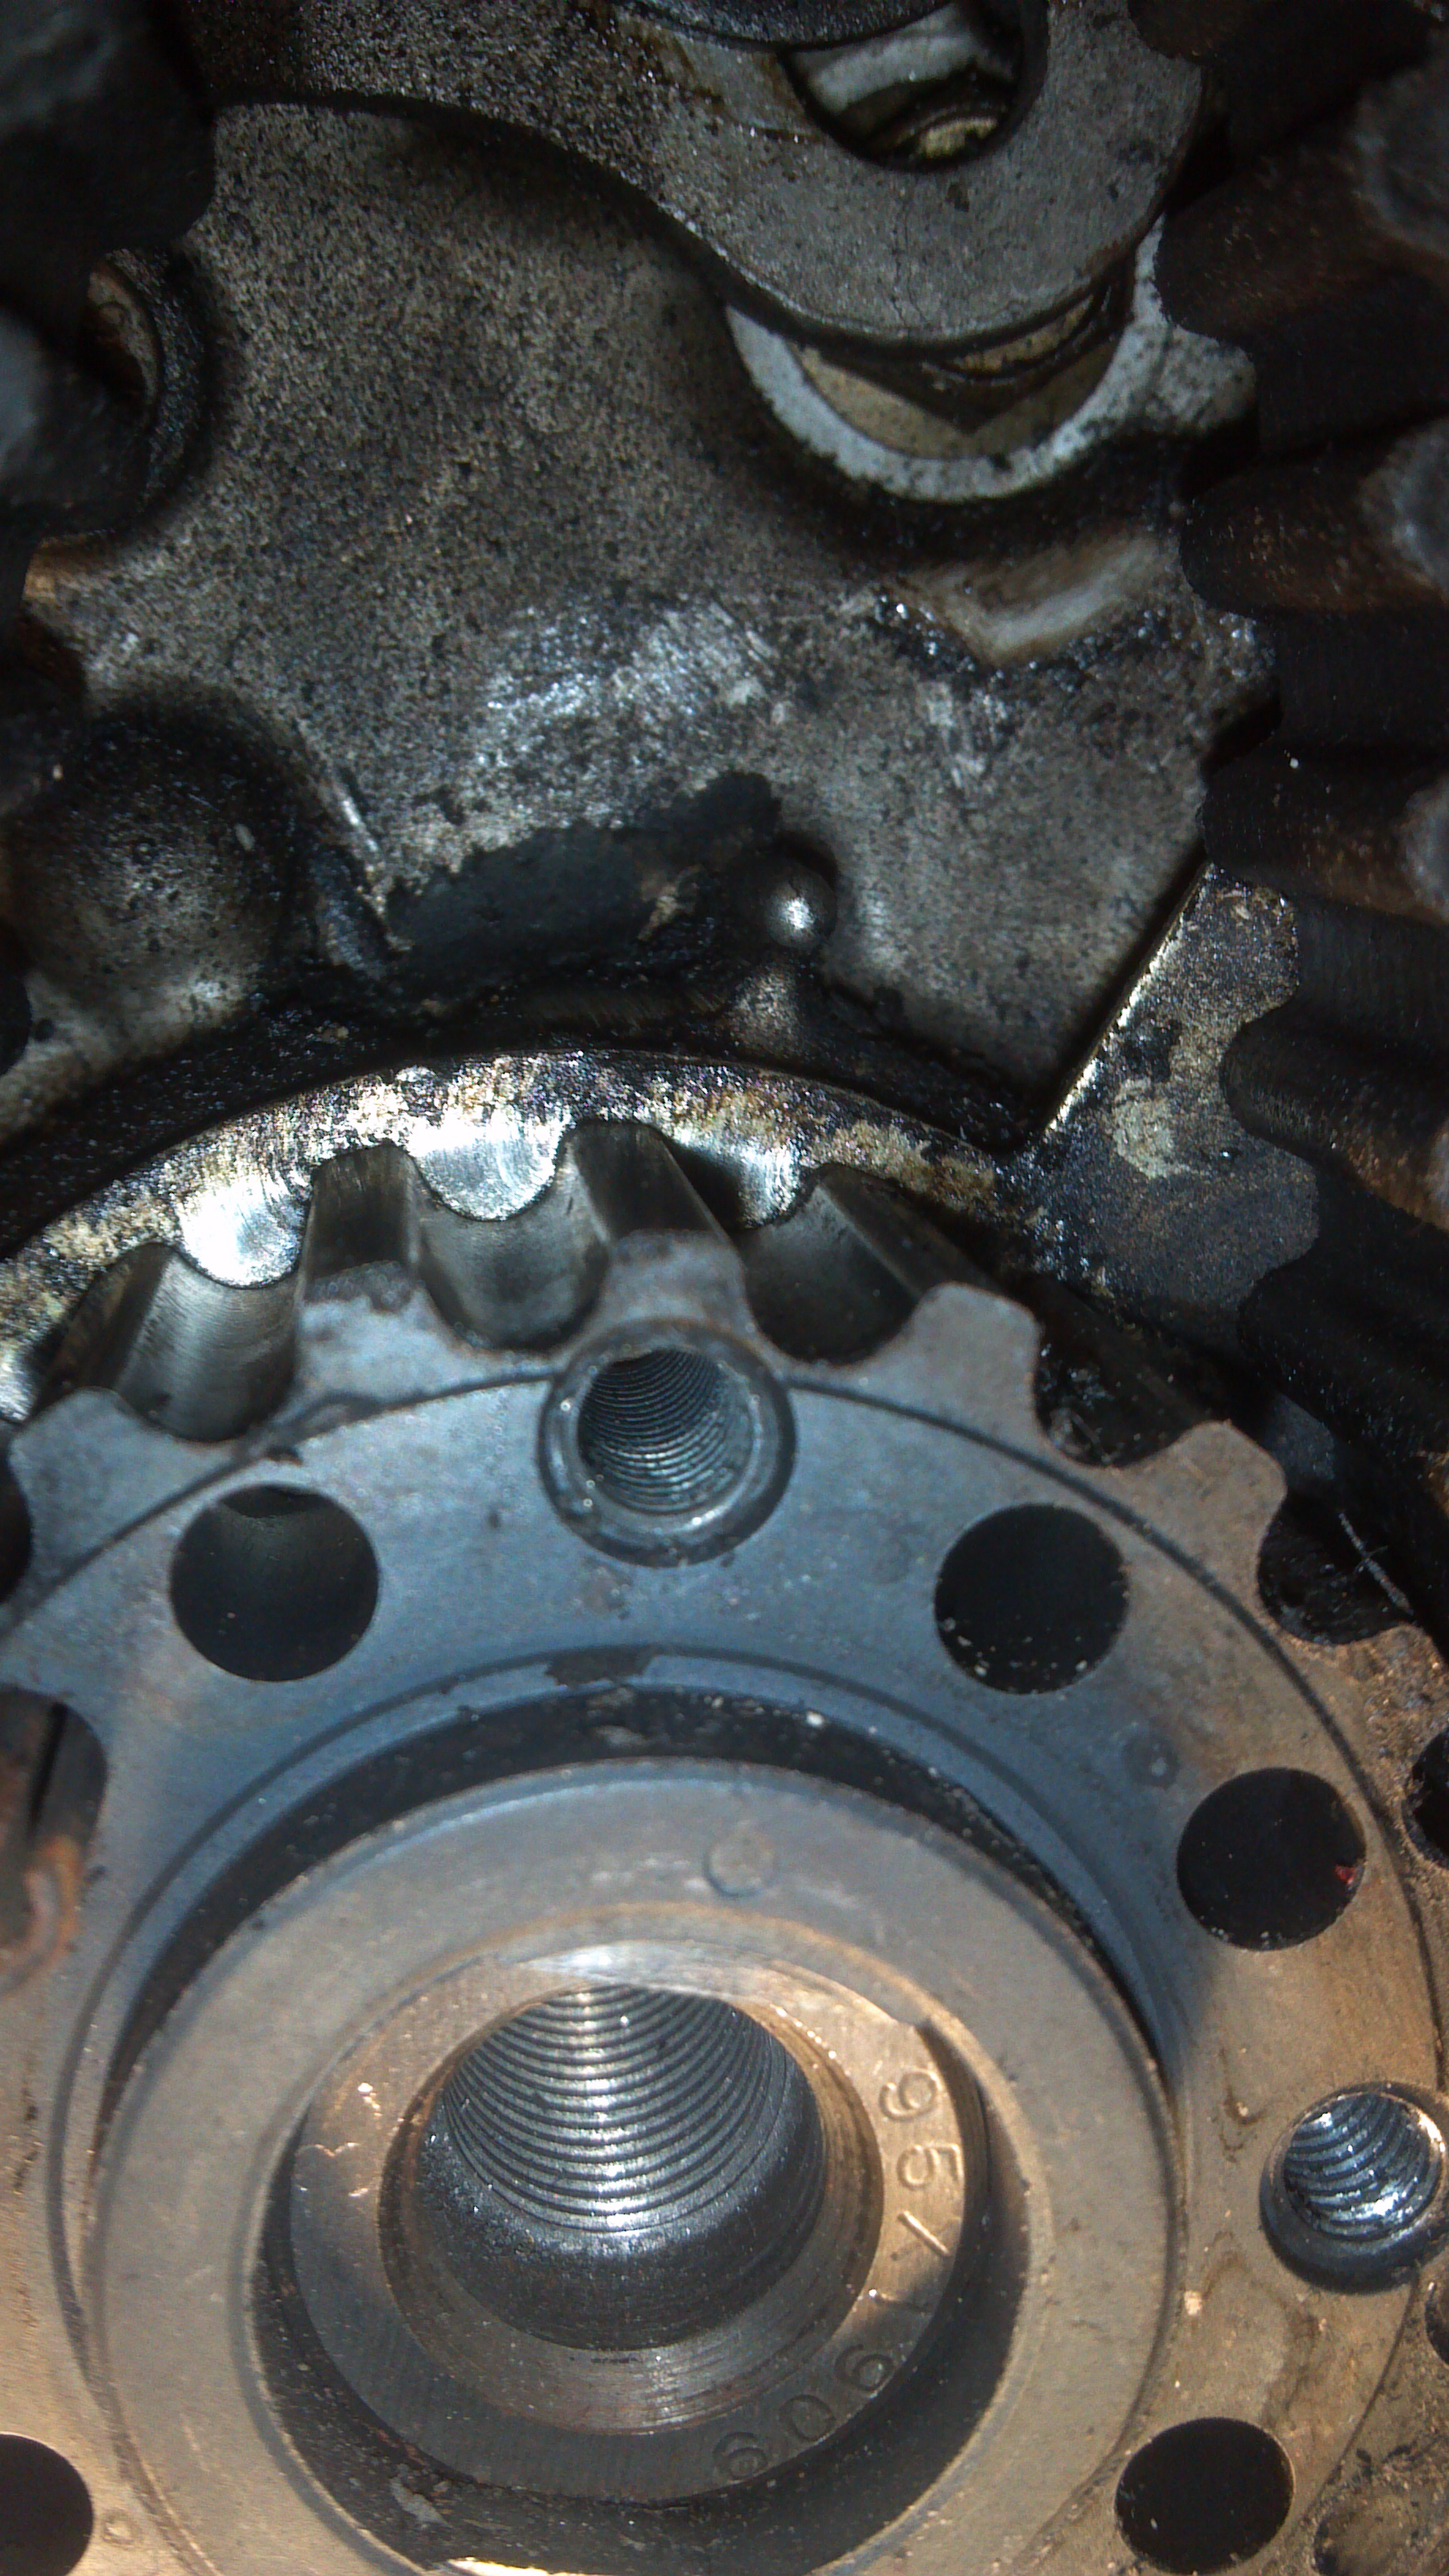 Gm Timing Marks Free Download Belt Im Trying To Fix The On My Mitsu Mirage 95 1 5l